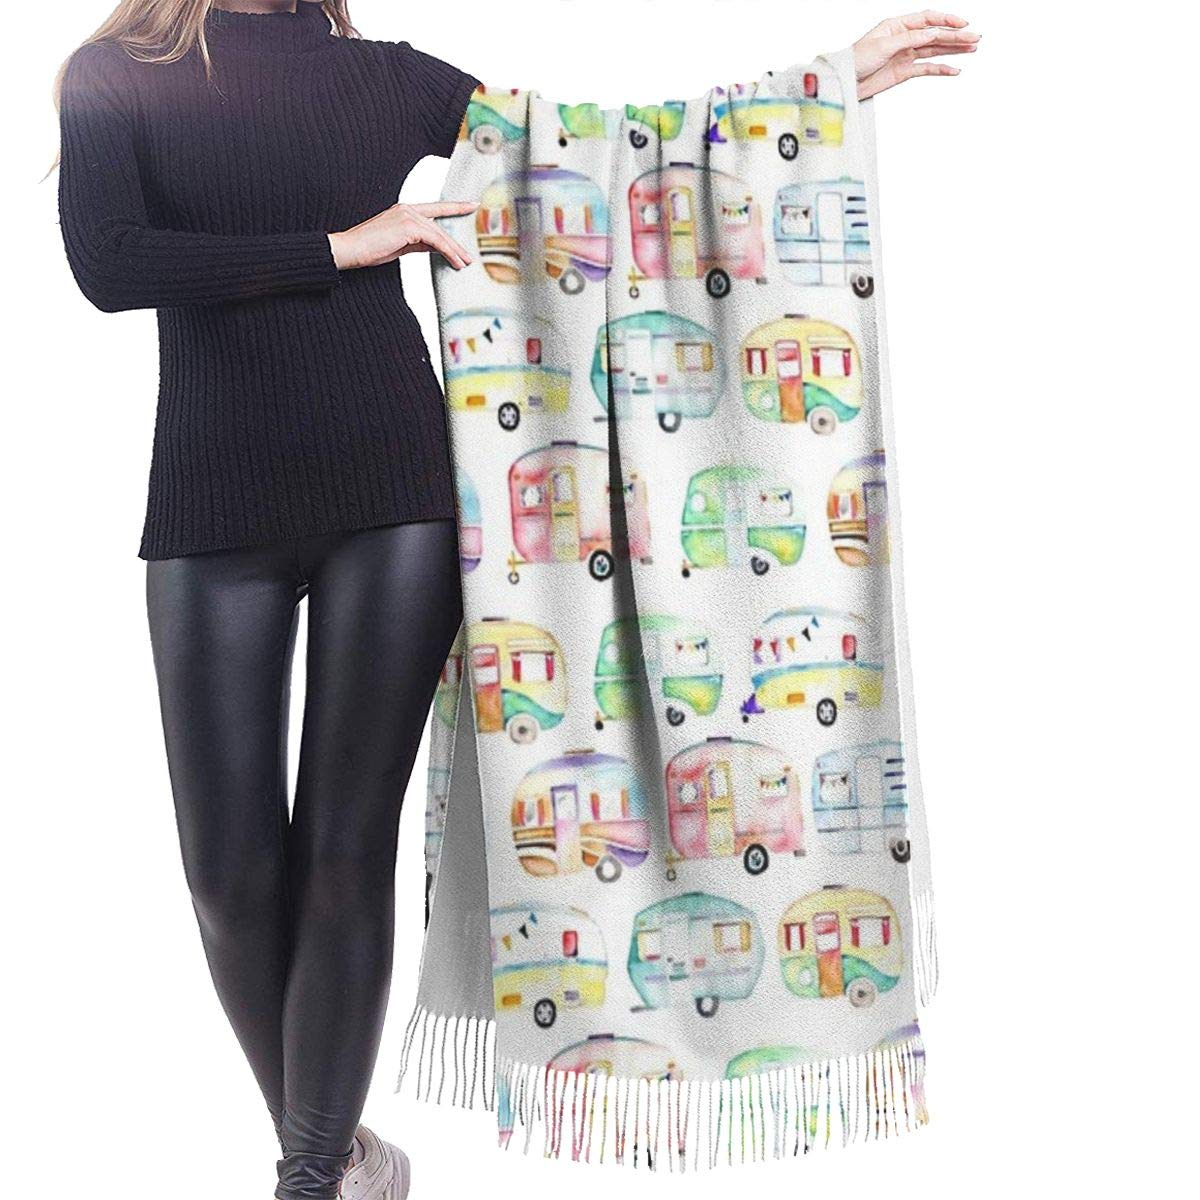 Retro Caravans Shawl Wrap Scarf Oversized Long Blanket Scarf Cozy Warm for Winter Fall 72x72 inches